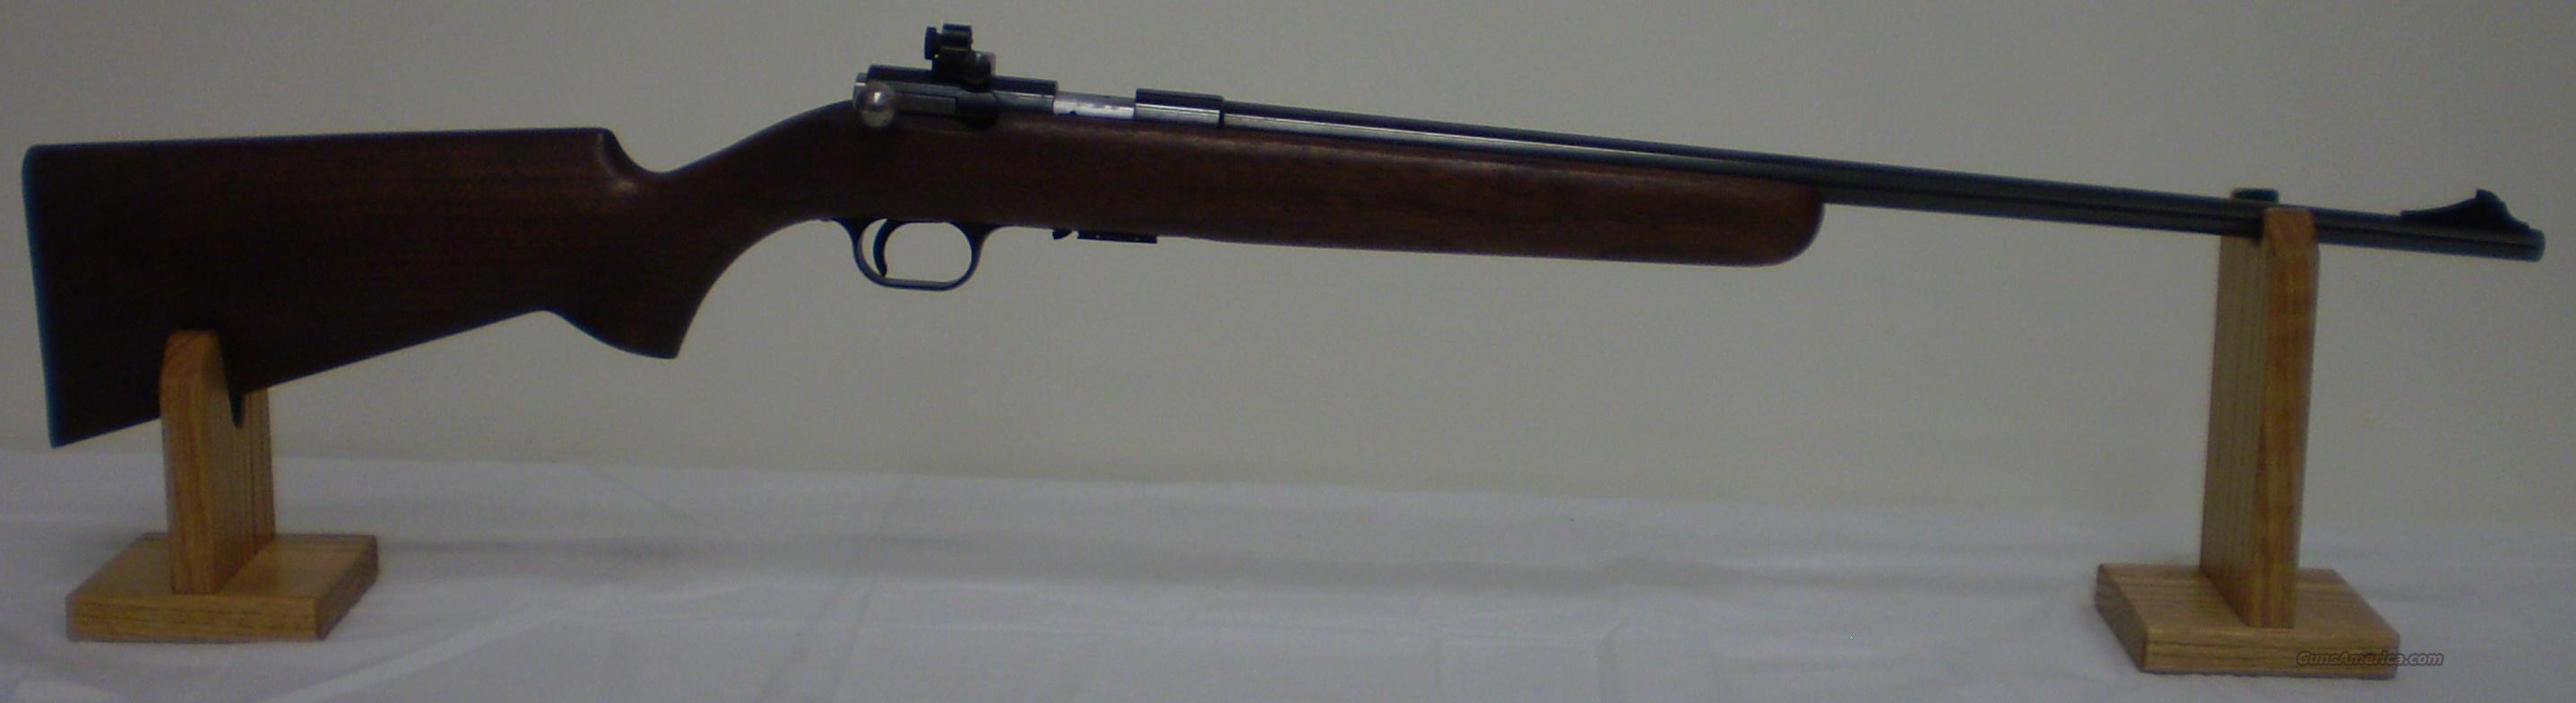 Unfired Browning Belgium T Bolt (1966) Like NEW  Guns > Rifles > Browning Rifles > Bolt Action > Hunting > Blue